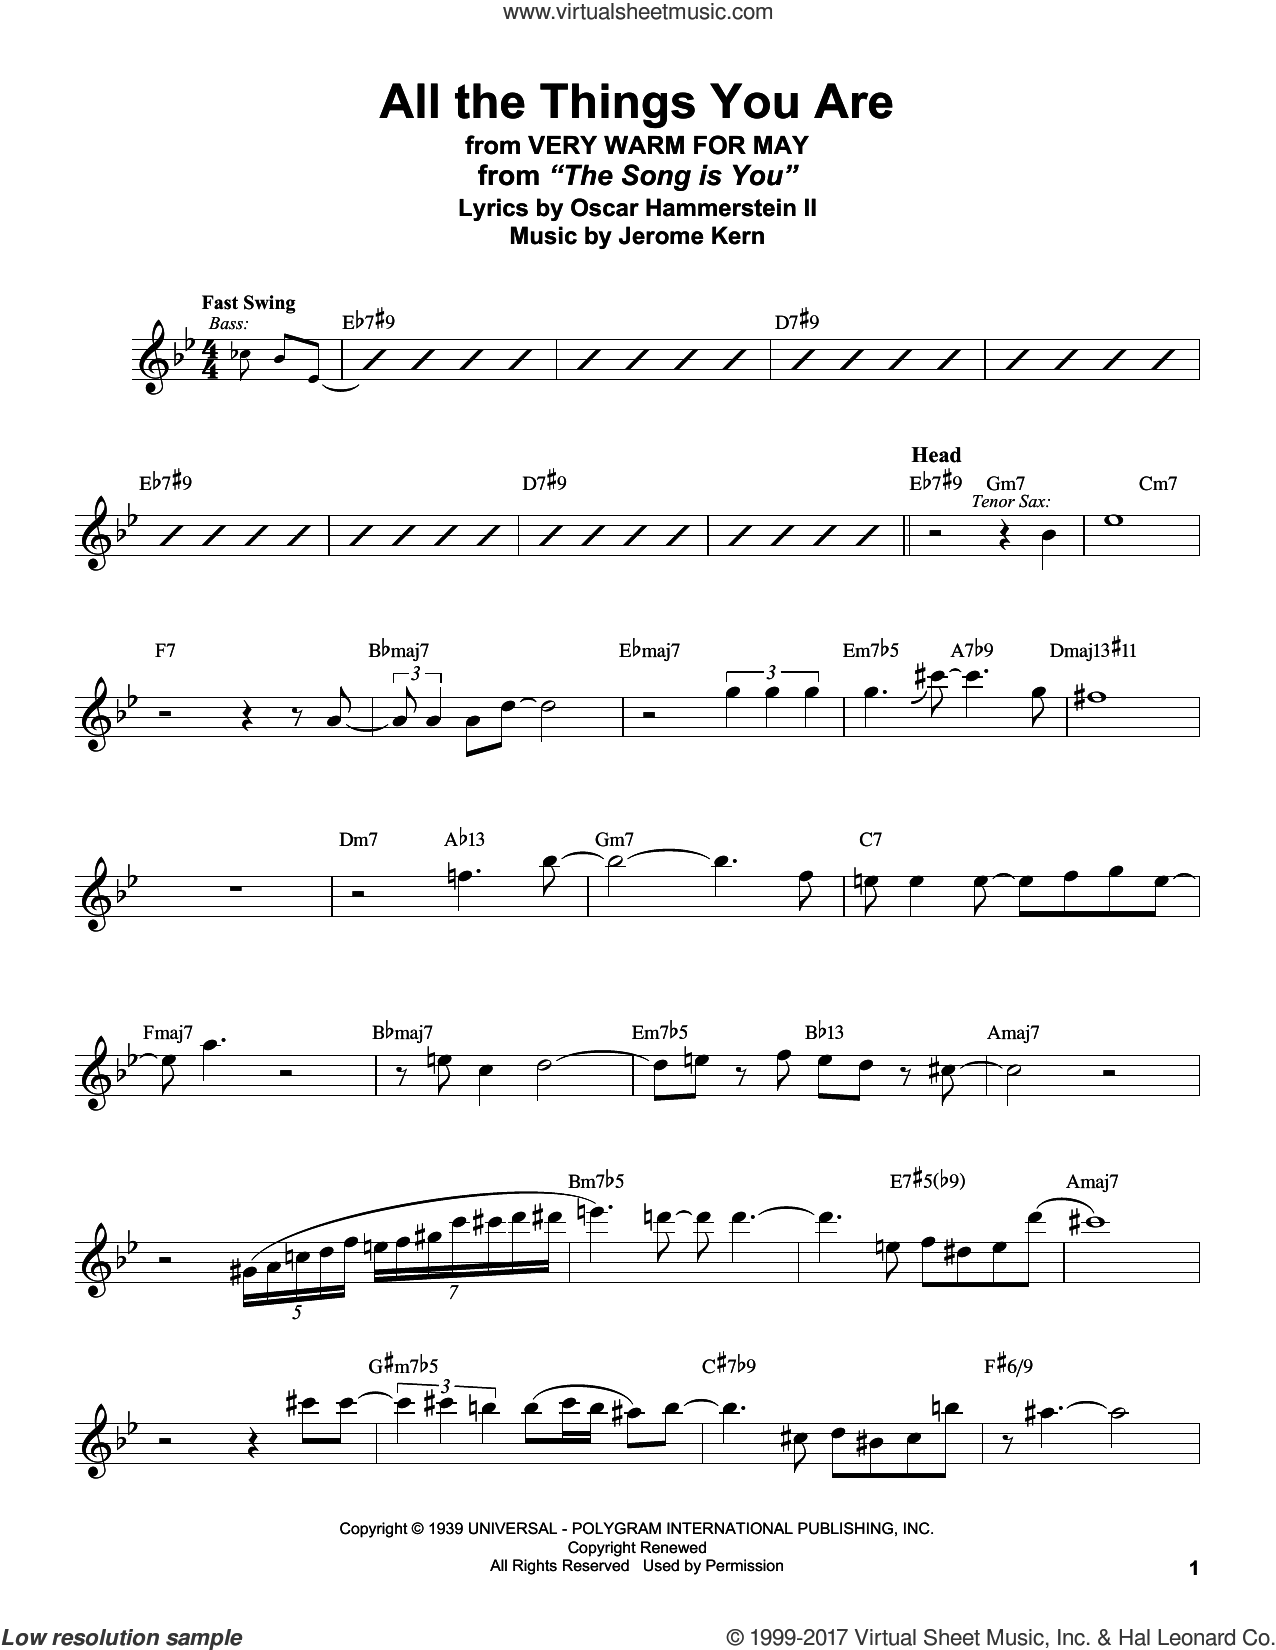 All The Things You Are sheet music for tenor saxophone solo (transcription) by Stan Getz, Jack Leonard with Tommy Dorsey Orchestra, Jerome Kern and Oscar II Hammerstein, intermediate tenor saxophone (transcription)